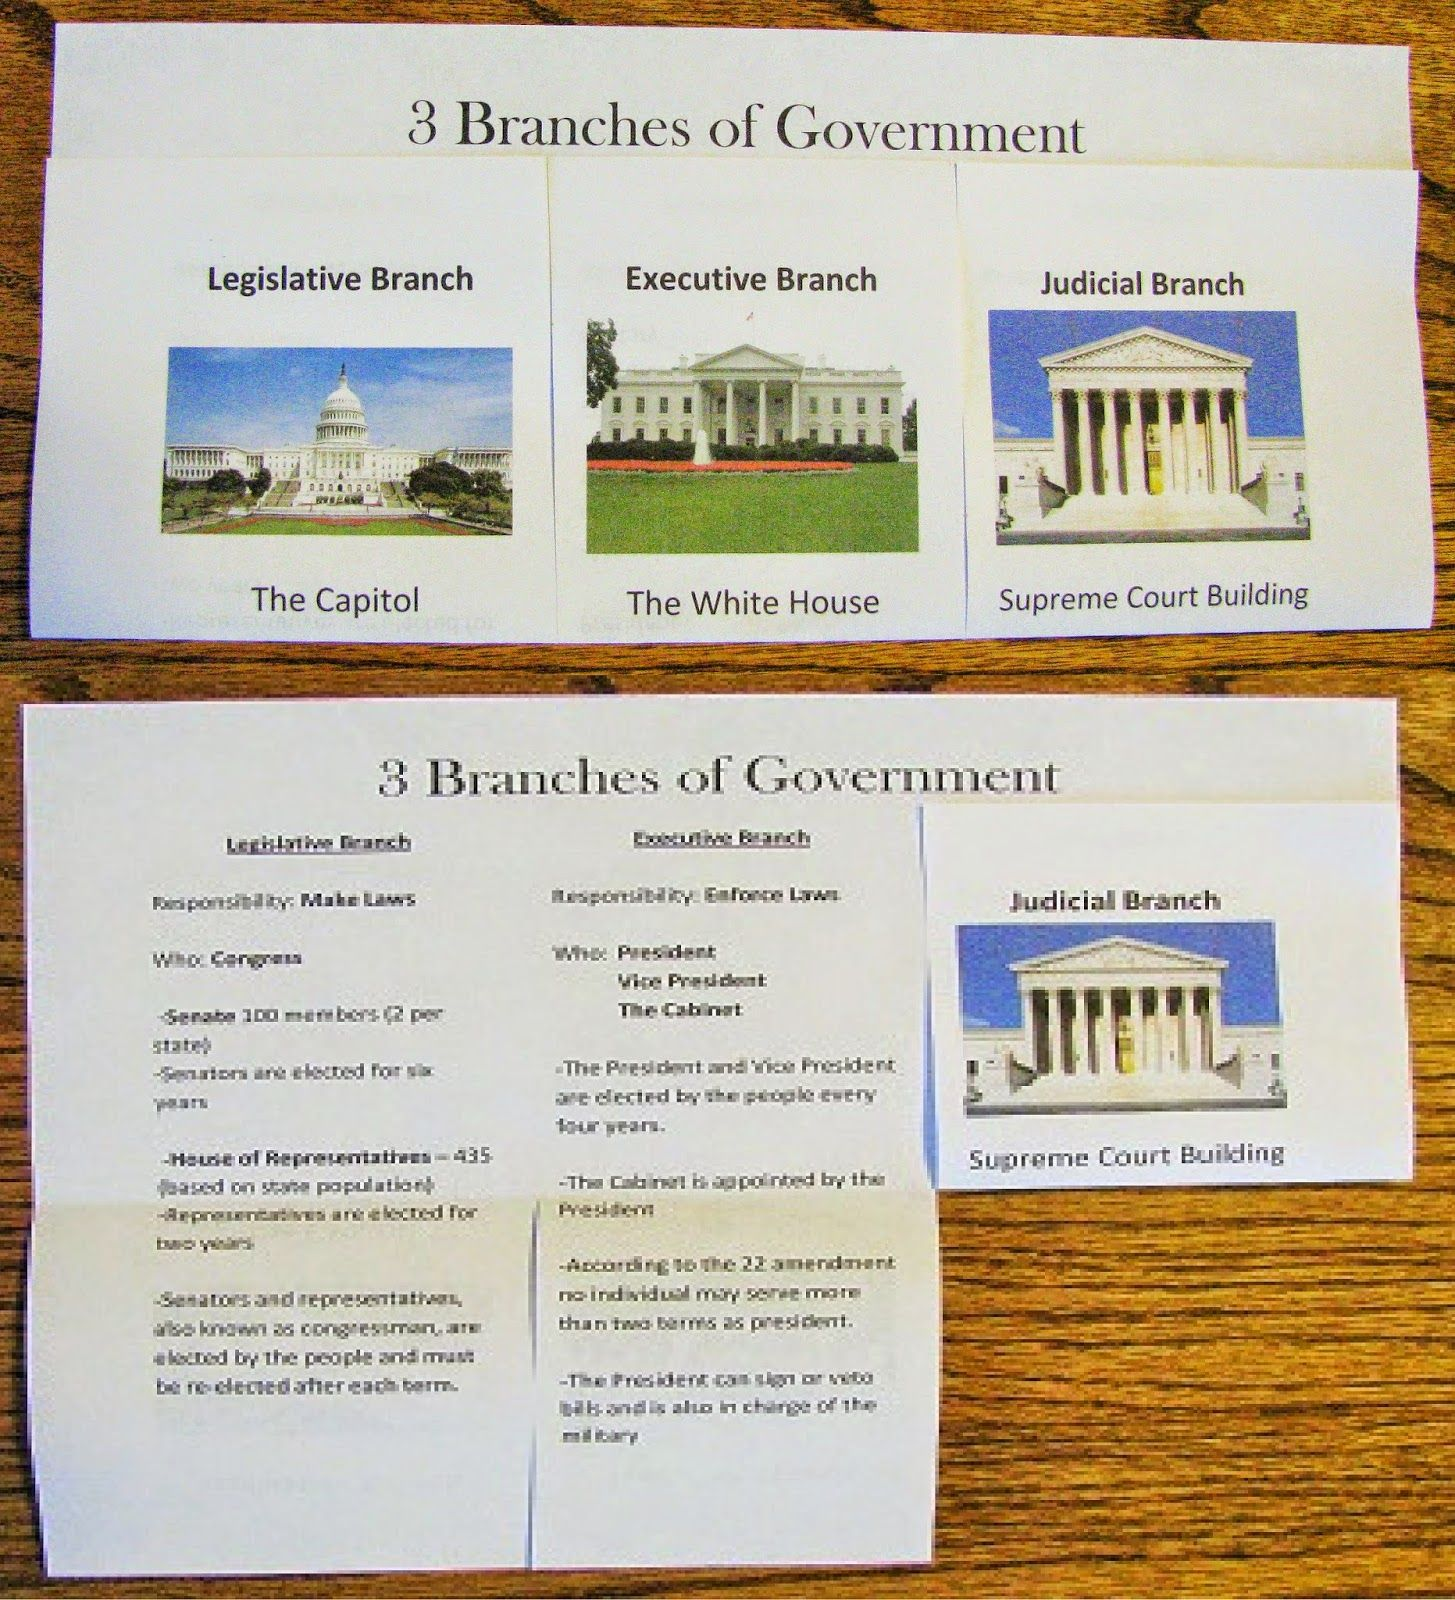 3 Branches Of Government Study Guide Foldable Graphic Organizer This Hands On Activity Is A Fun